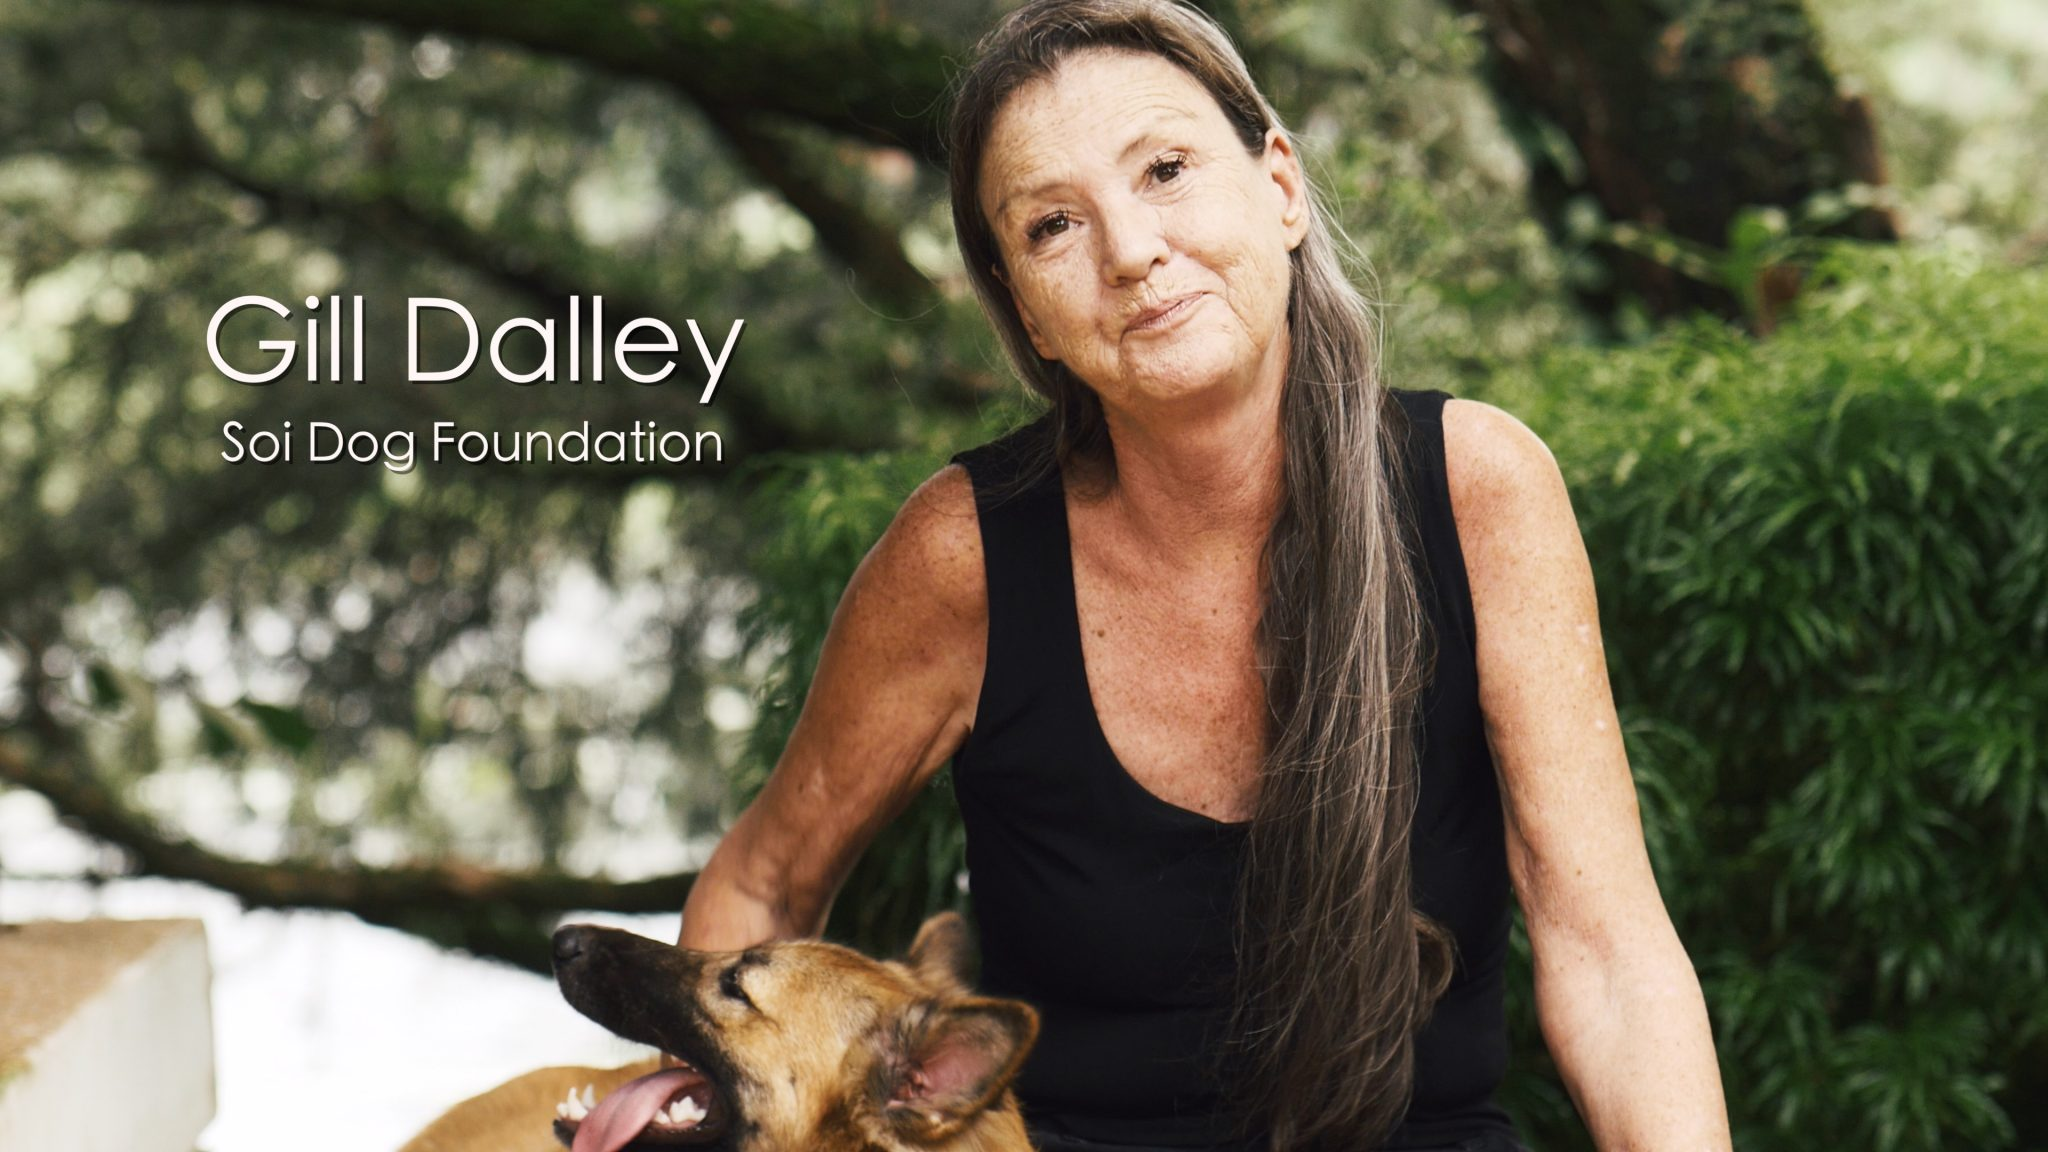 A Tribute to Gill Dalley of the Soi Dog Foundation